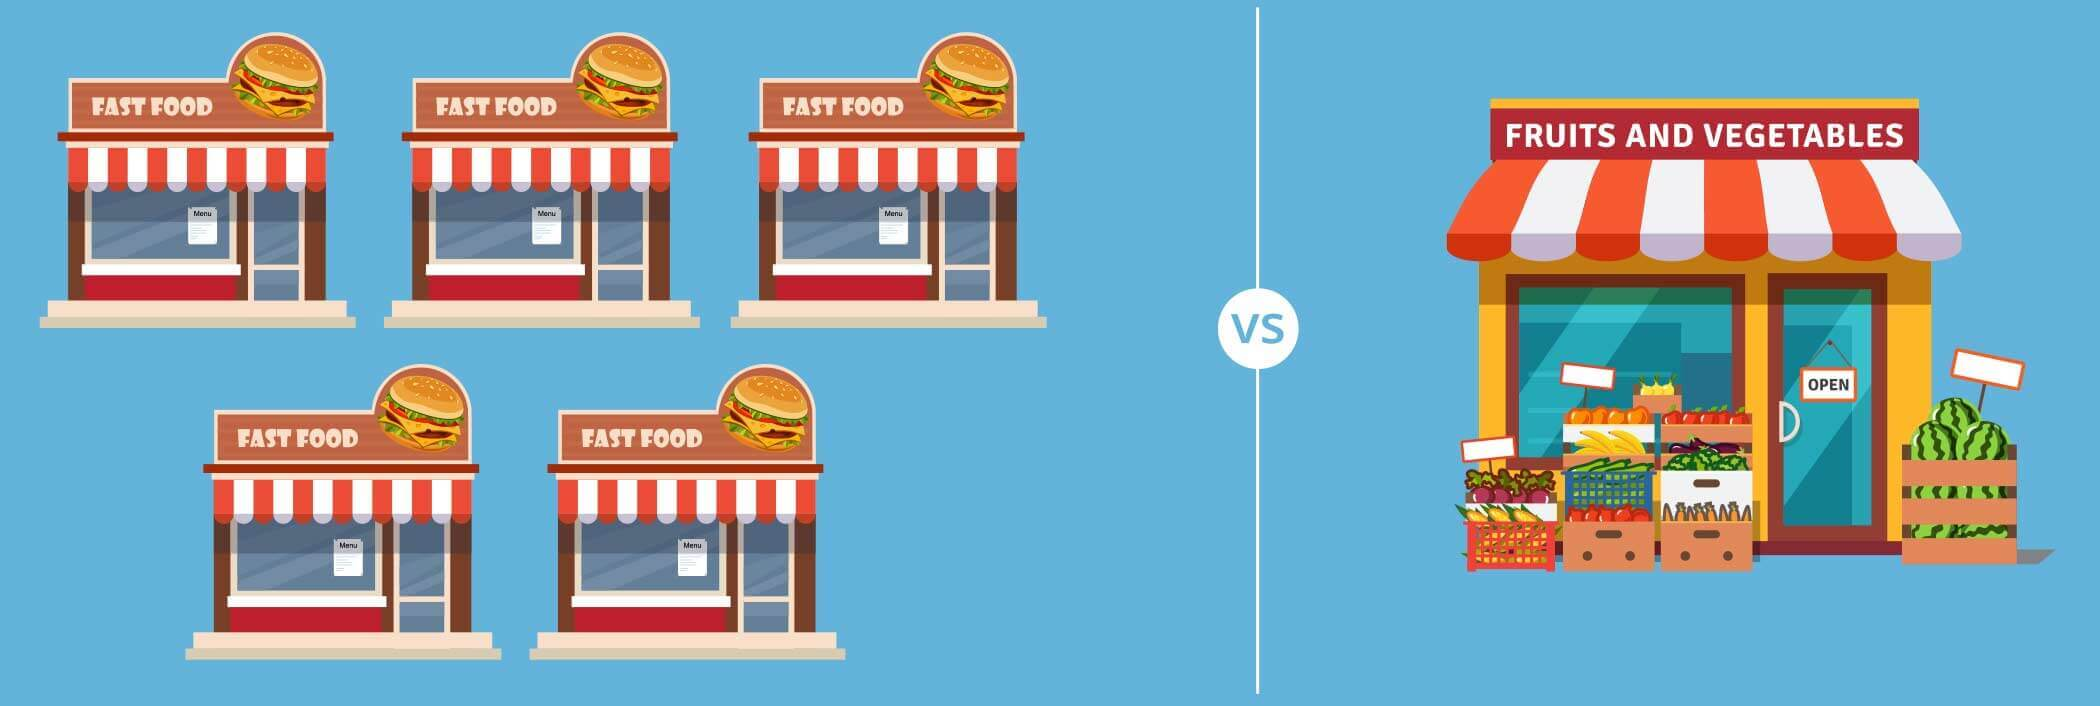 5 fast-food establishments for every 1 supermarket